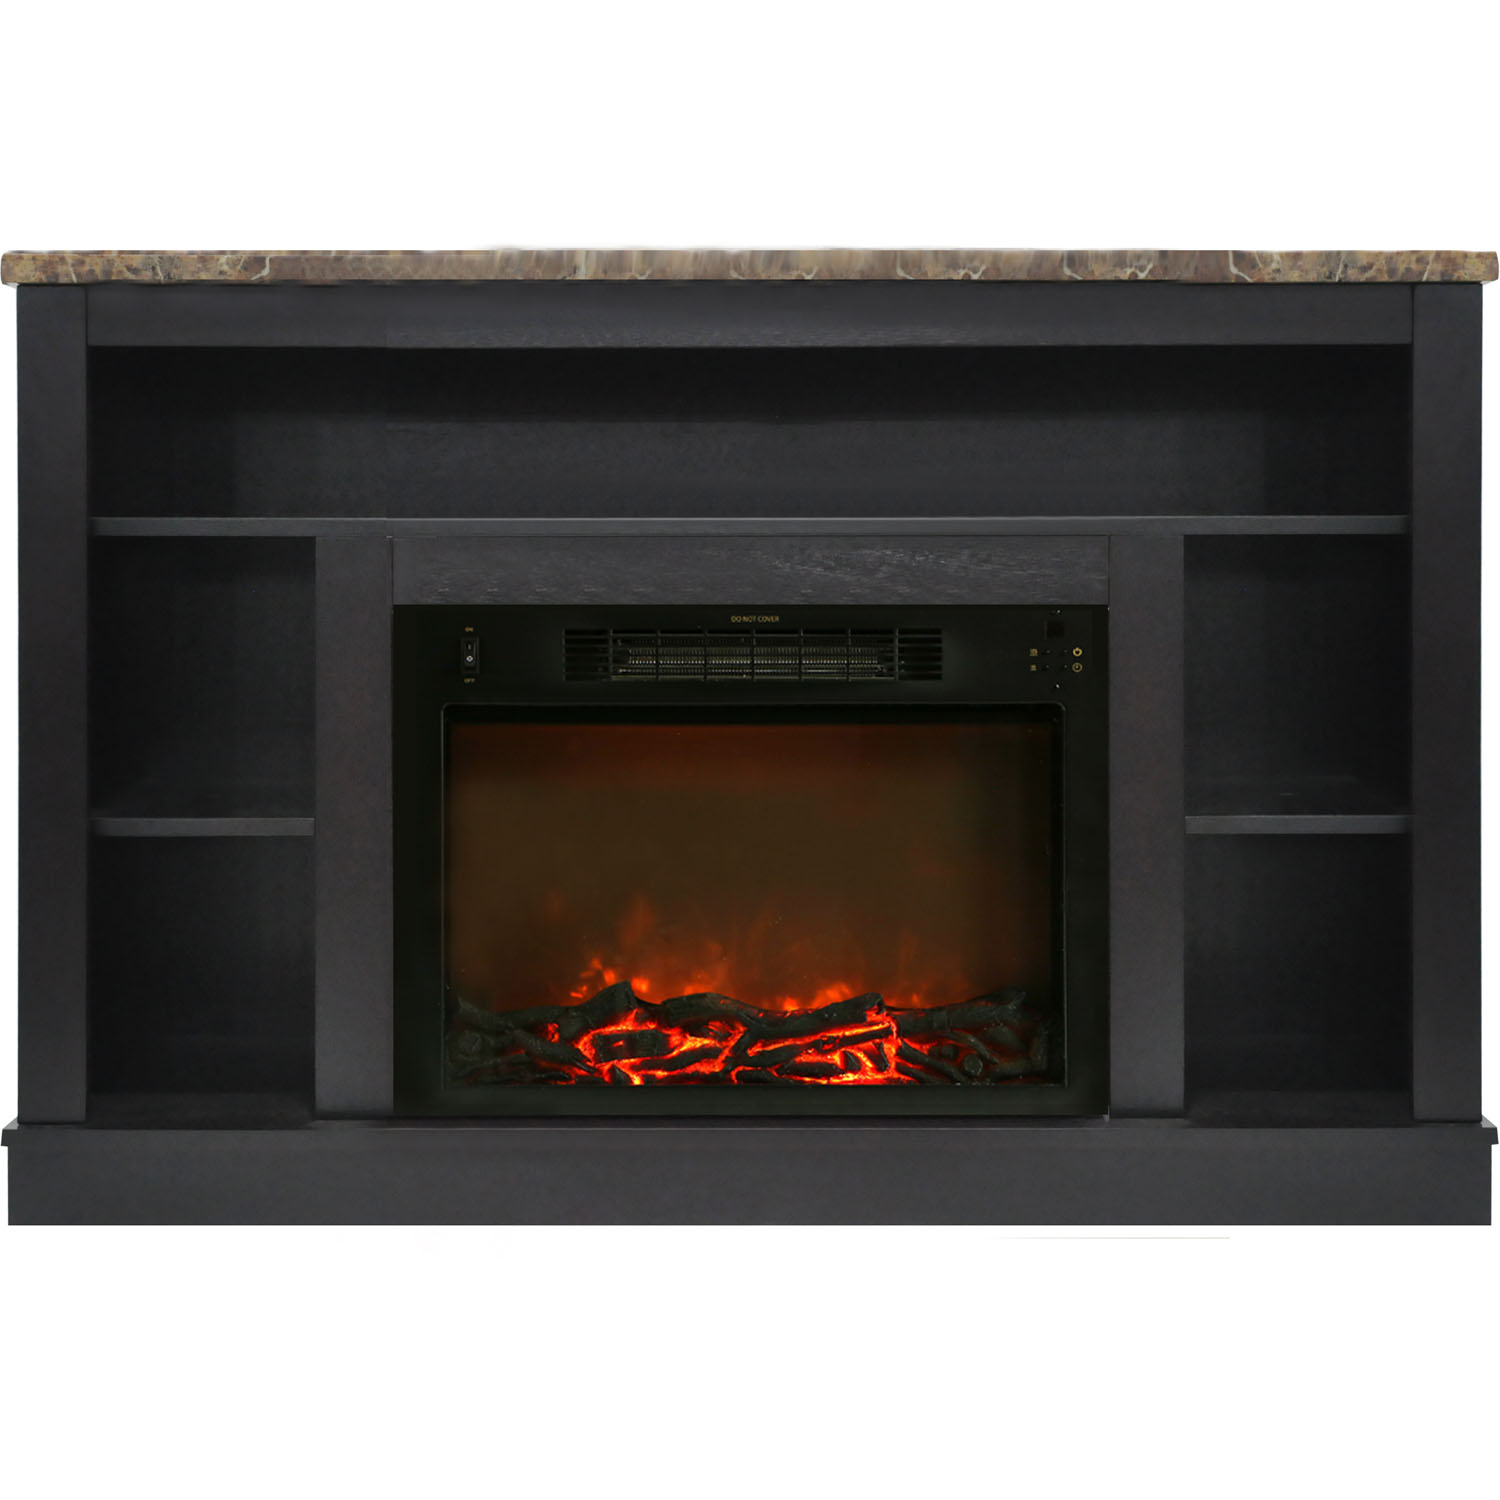 "Cambridge Seville 47"" Electric Fireplace Mantel Heater with Charred Log Display"